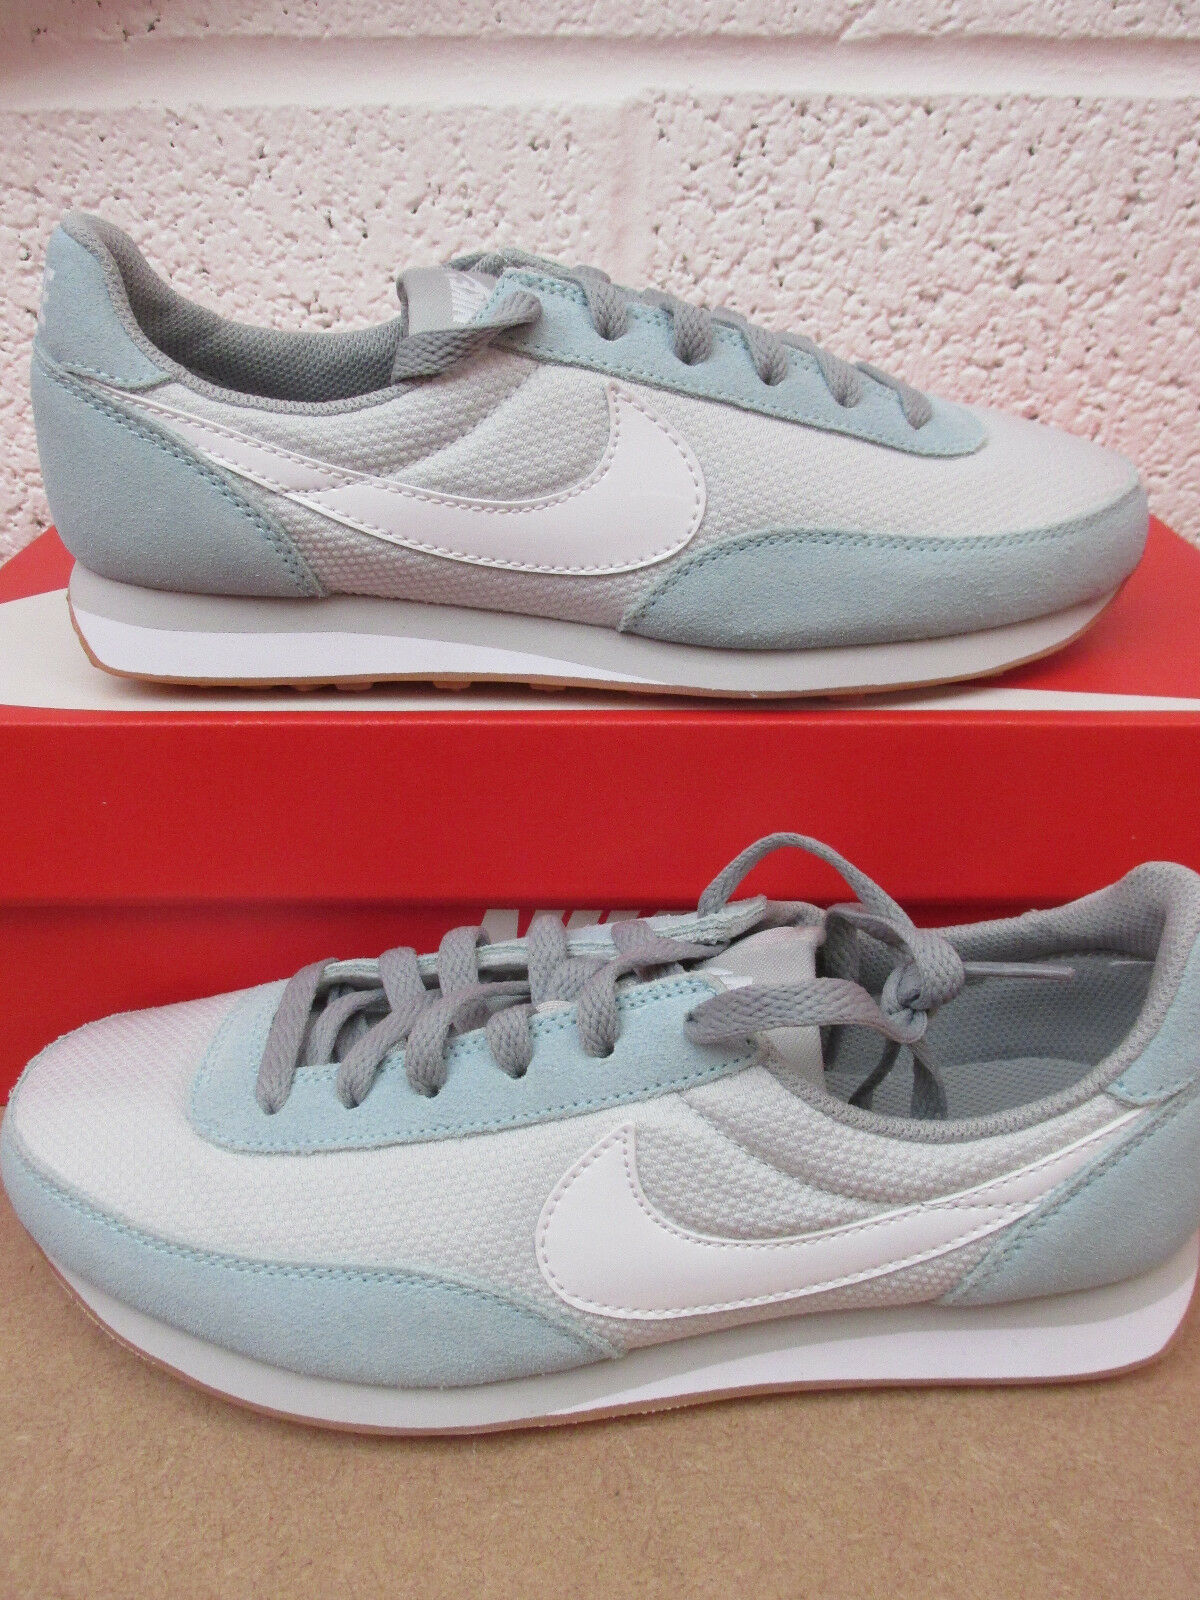 nike womens elite textile sneakers trainers 586310 004 sneakers textile shoes 816c53